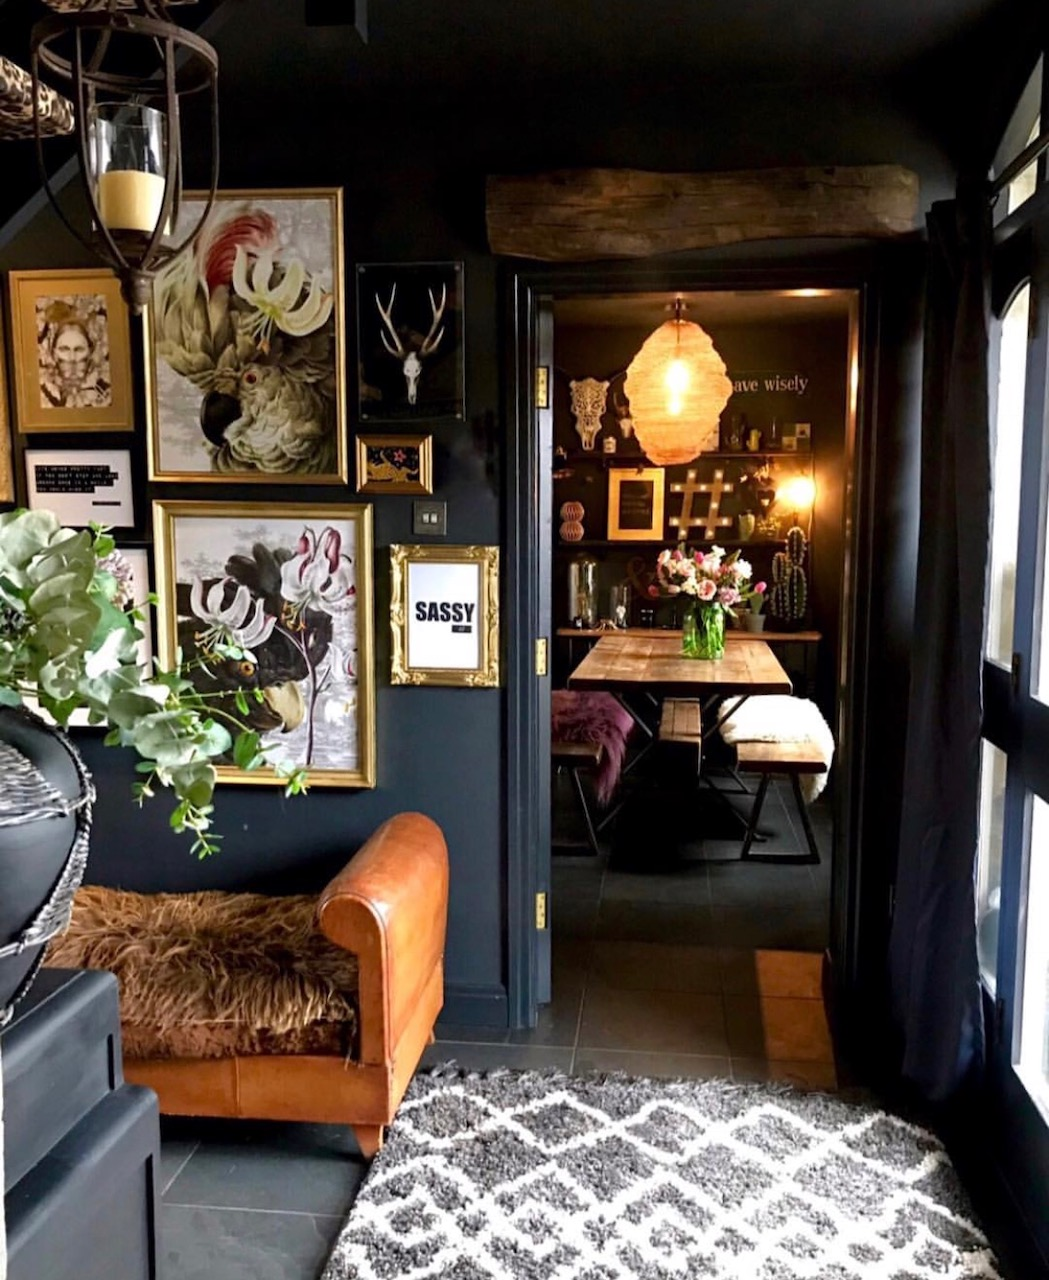 Eclectic Home Tour: Eclectic, Dark & Glamorous Home Tour